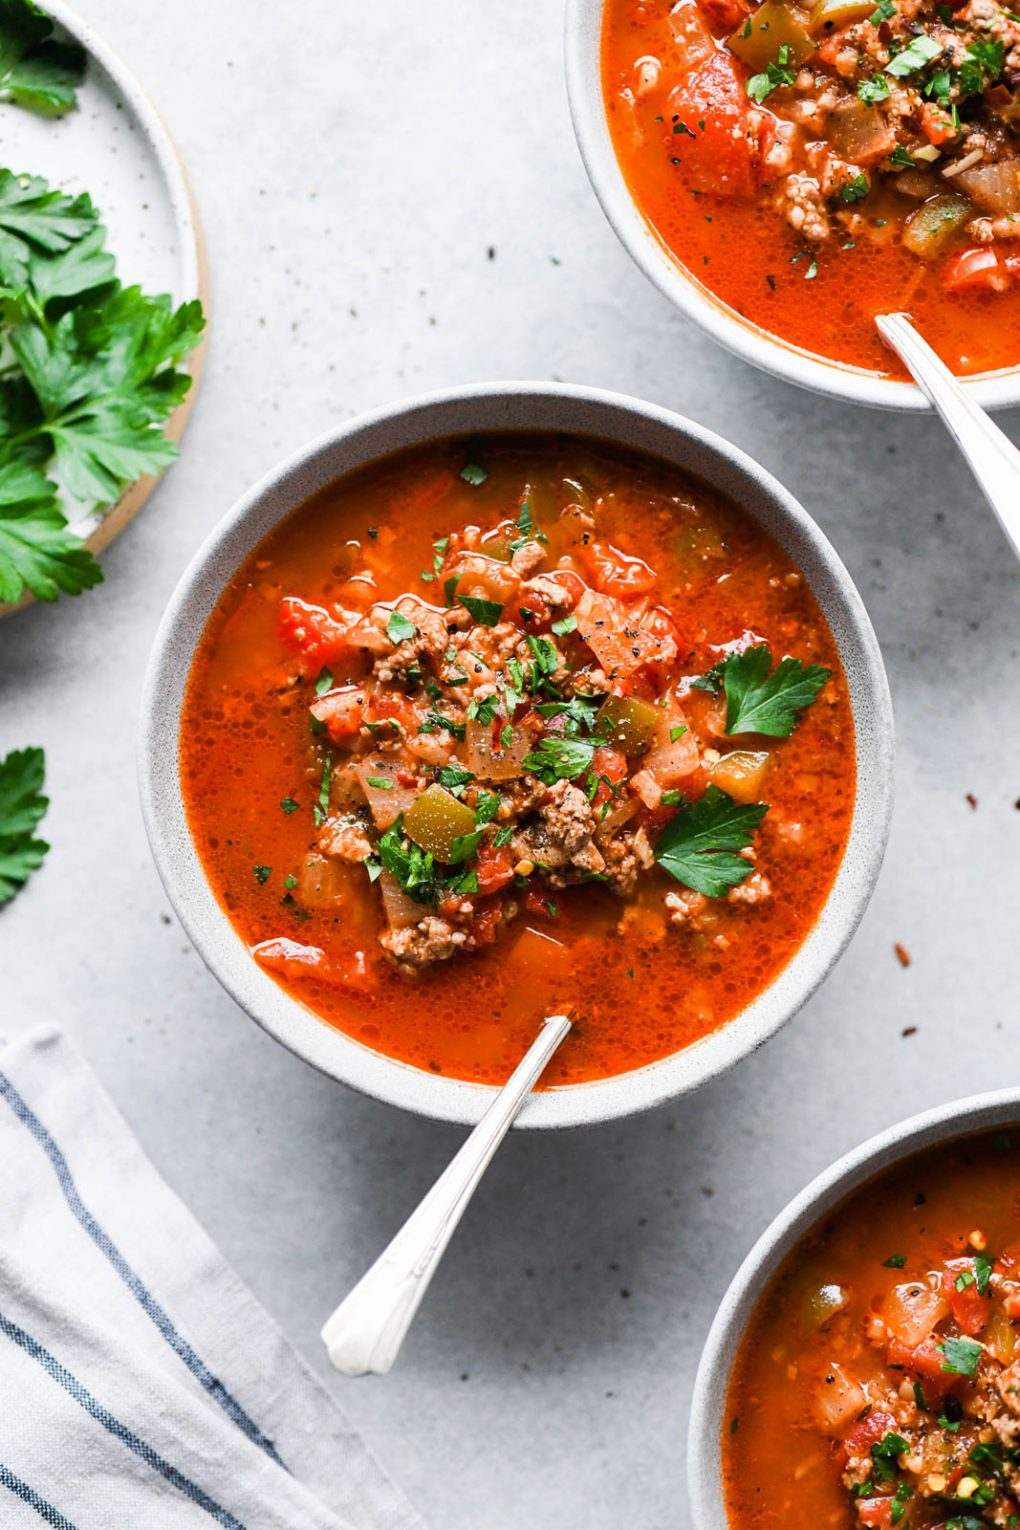 Overhead shot of several colorful bowl of stuffed pepper soup on a light background. On a light background, surrounded by a striped napkin and sprigs of fresh parsley.